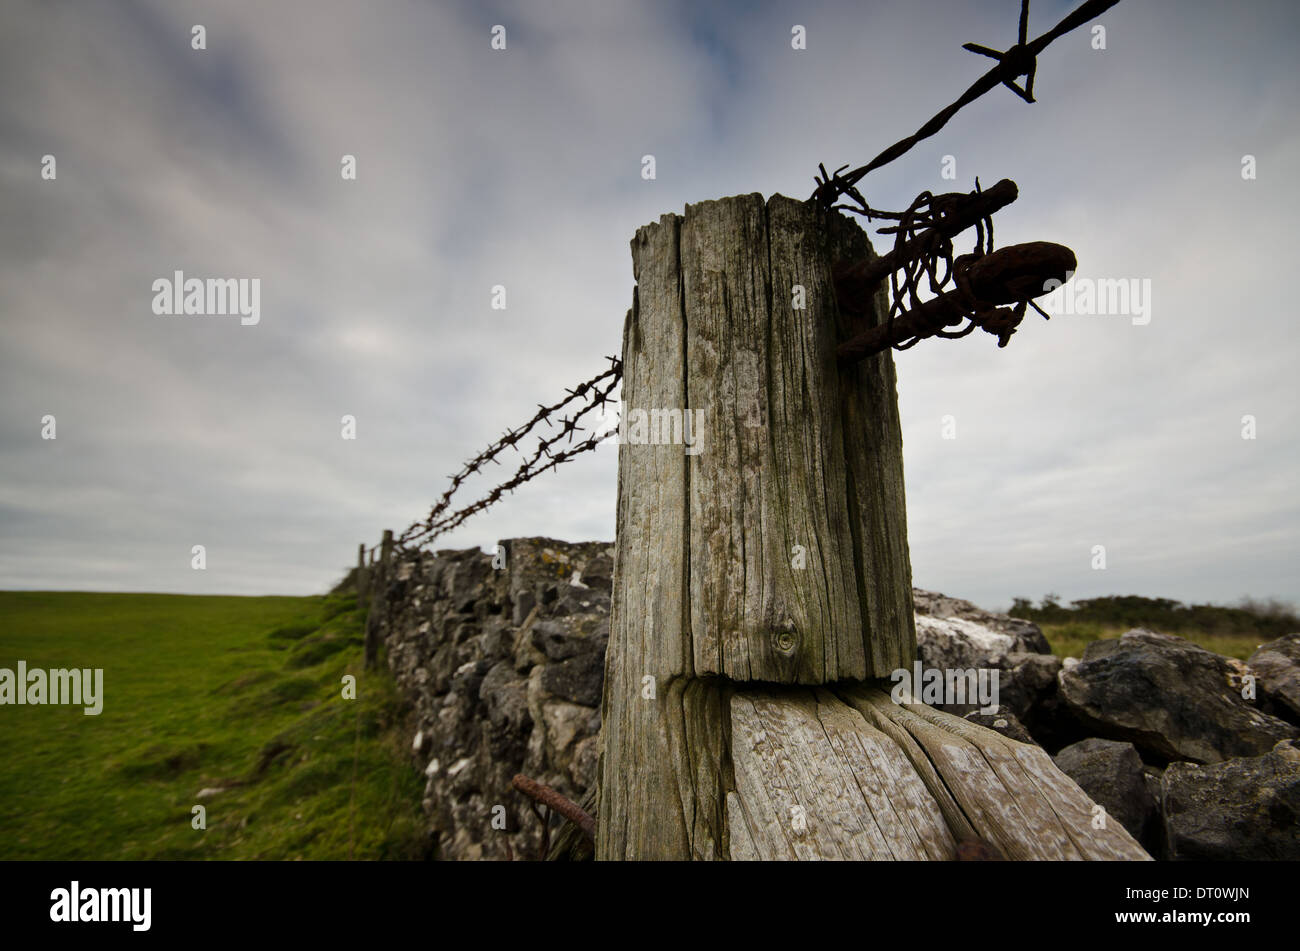 Barbed Wire Fence and Fence Post - Stock Image